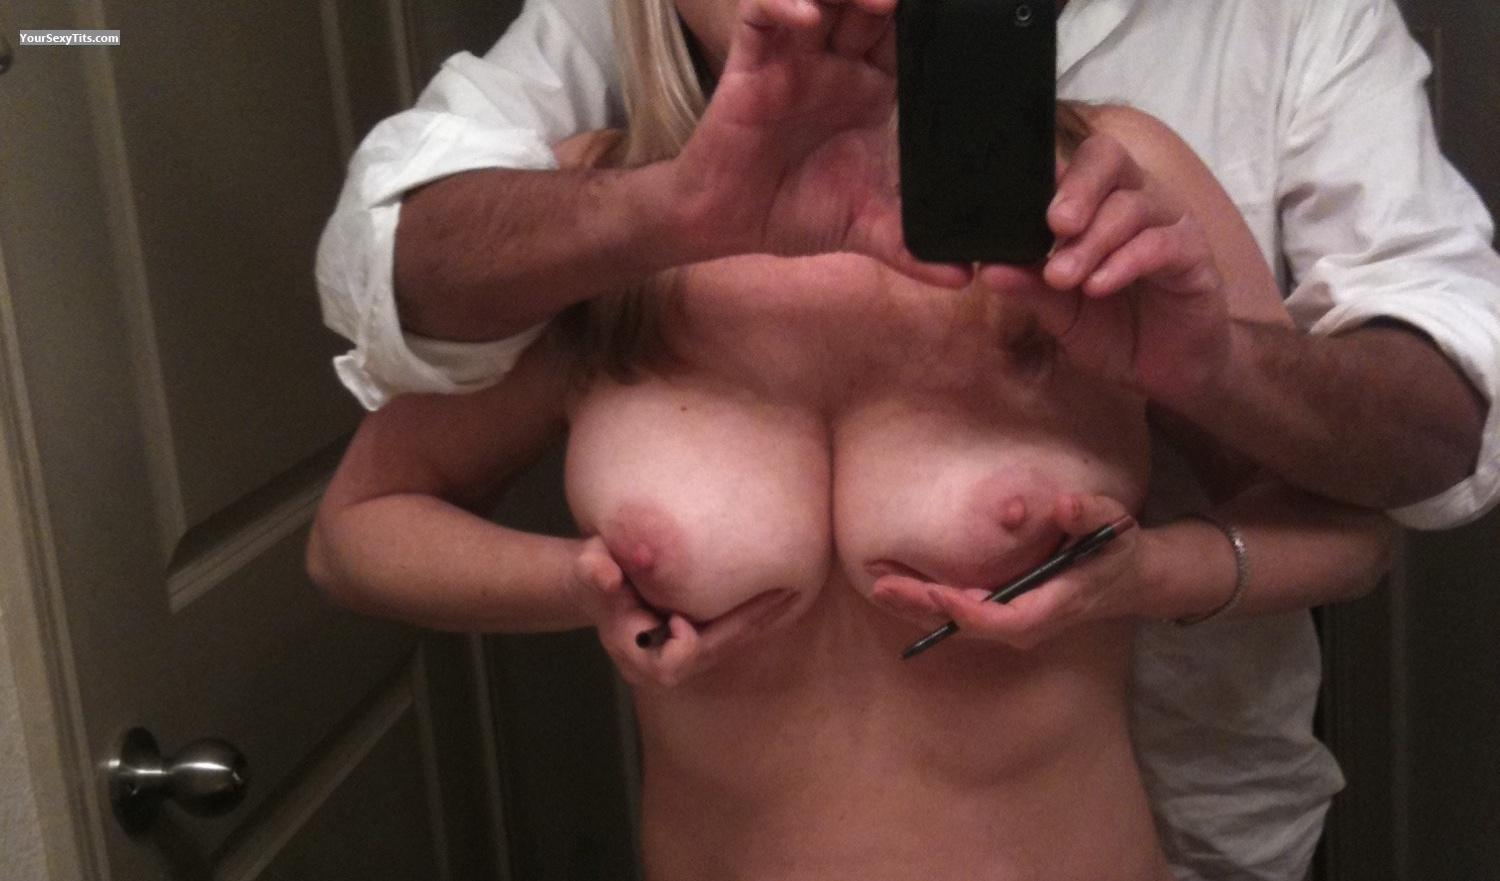 Tit Flash: Very Big Tits By IPhone - Natural51 from United States